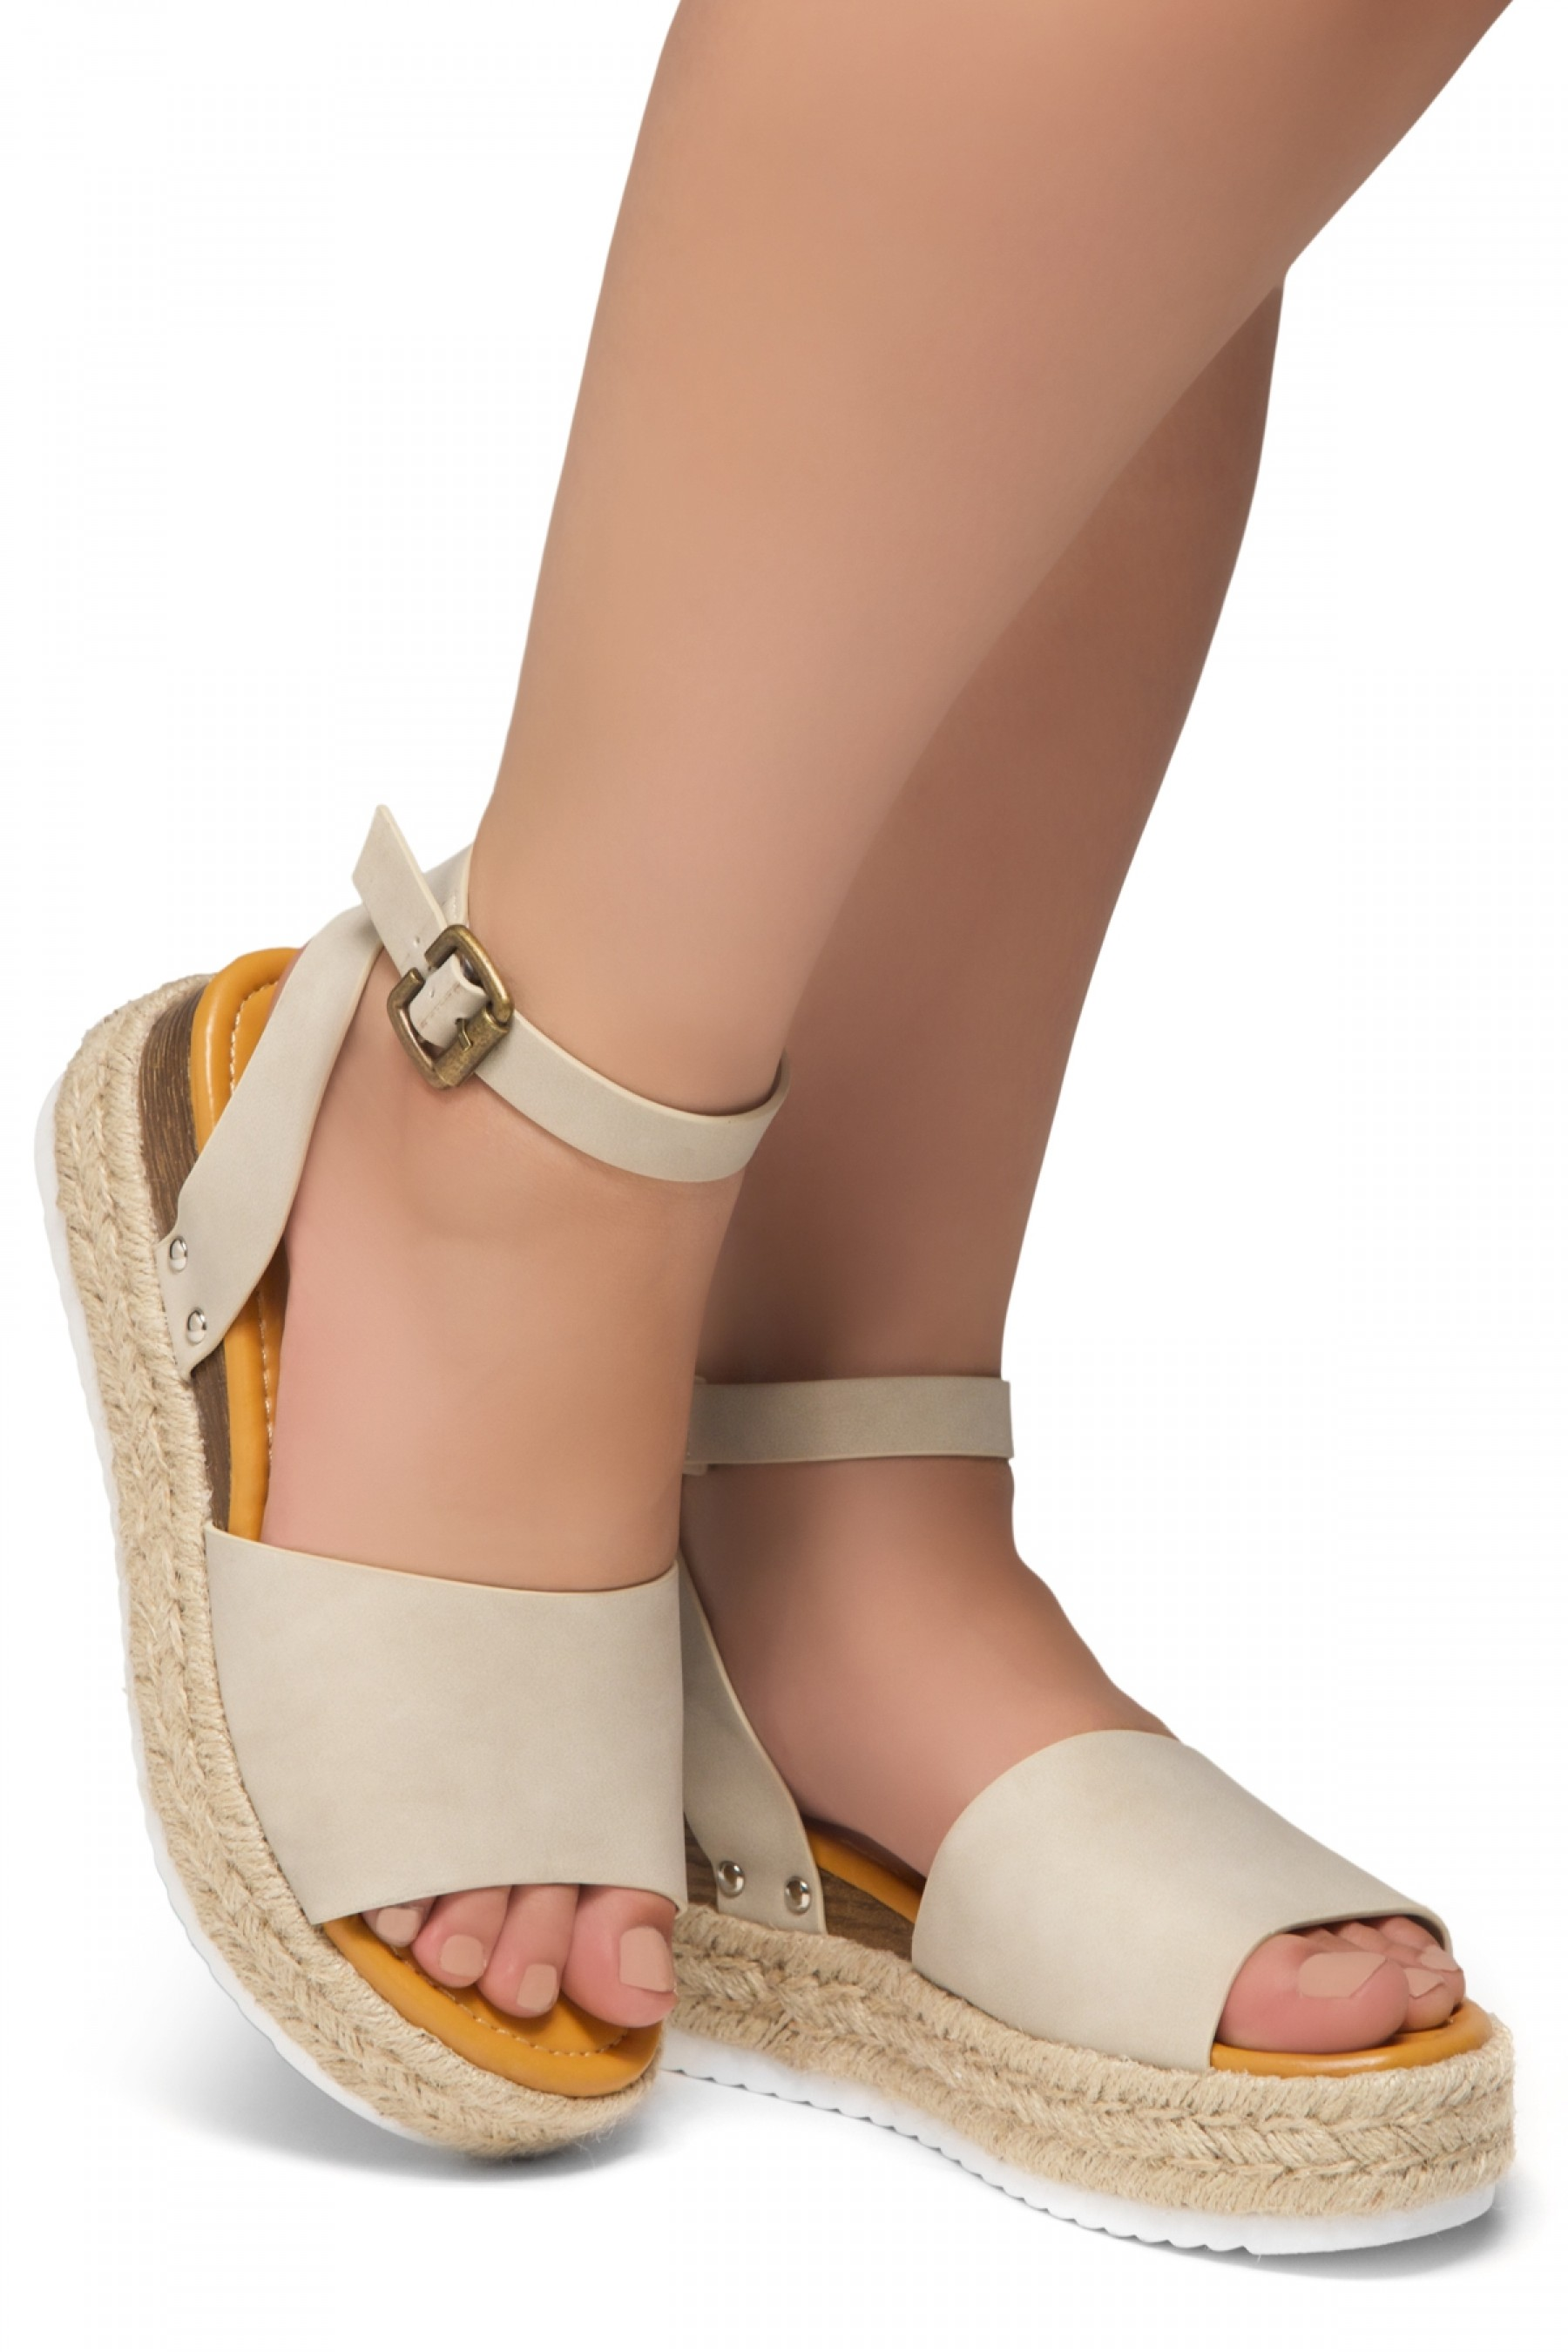 Shoe Land Legossa-Women's Open Toe Ankle Strap Platform Wedge Shoes Casual Espadrilles Trim Flatform Studded Wedge Sandals (1825/Beige)